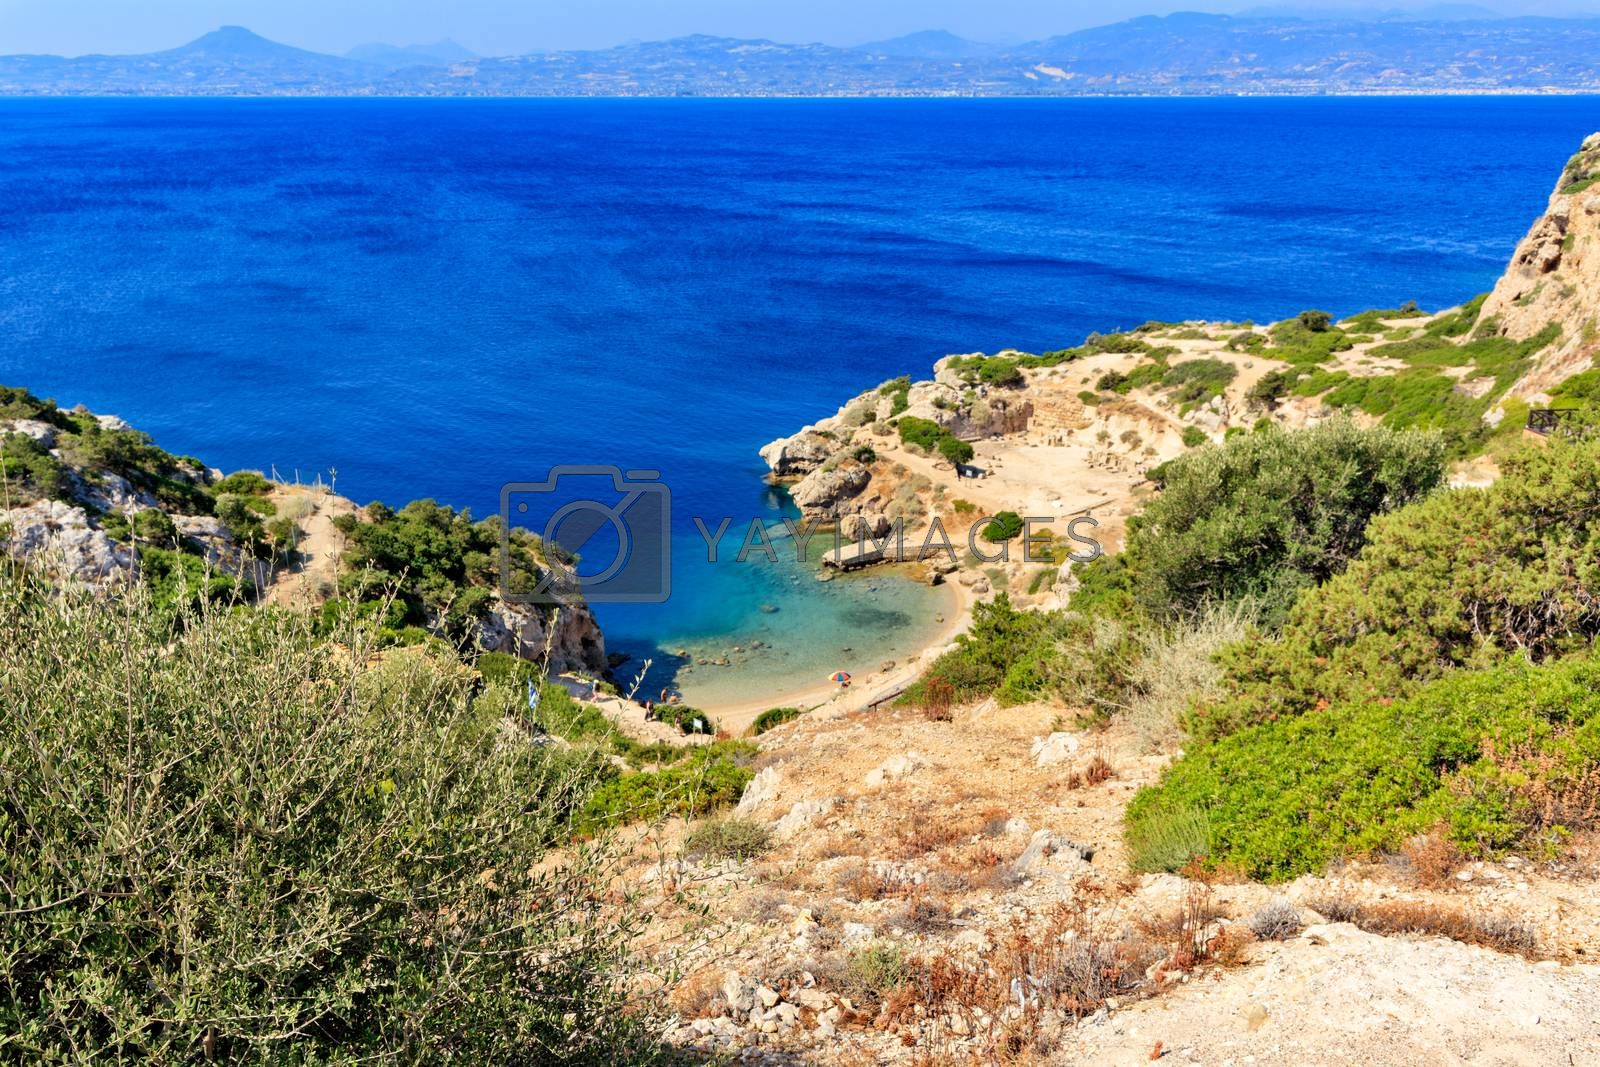 Rigid shrubbery grows on the rocky slopes of the Greek Corinthian Gulf on the background of a blue lagoon on the coast, a beautiful view from above, image with copy space.